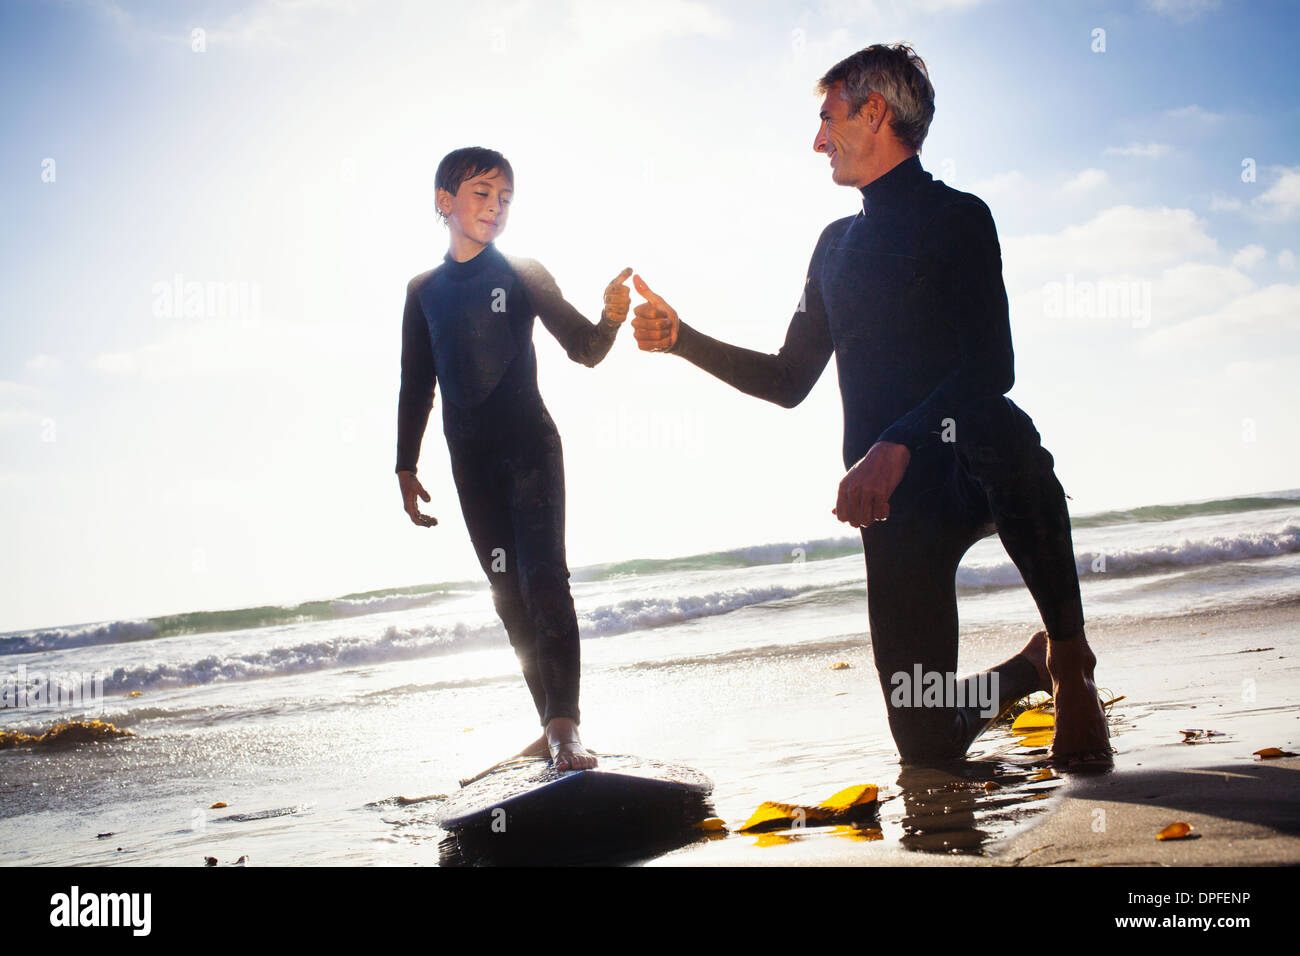 Father and son with surfboard on beach, Encinitas, California, USA - Stock Image